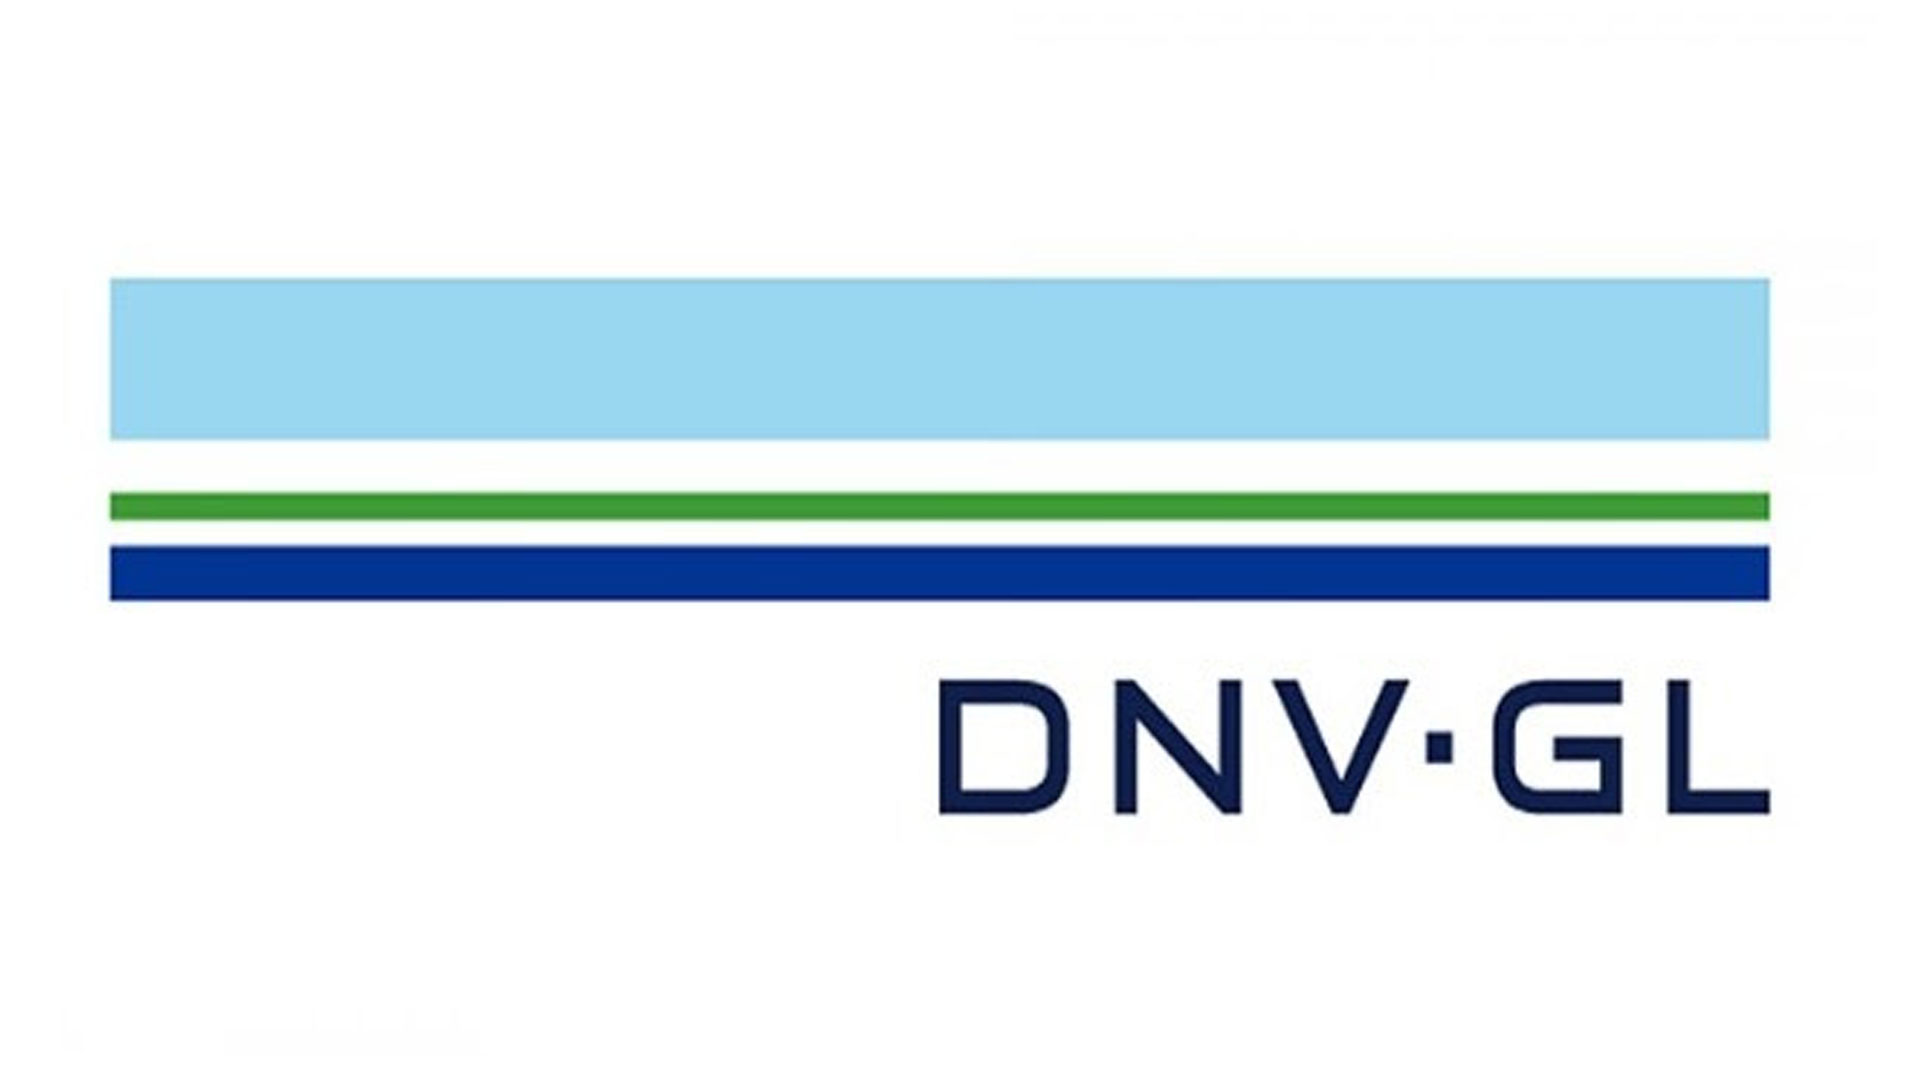 DNV GL DEDICATES EXTRA RESOURCES TO ITS OCEAN RESEARCH PROGRAM